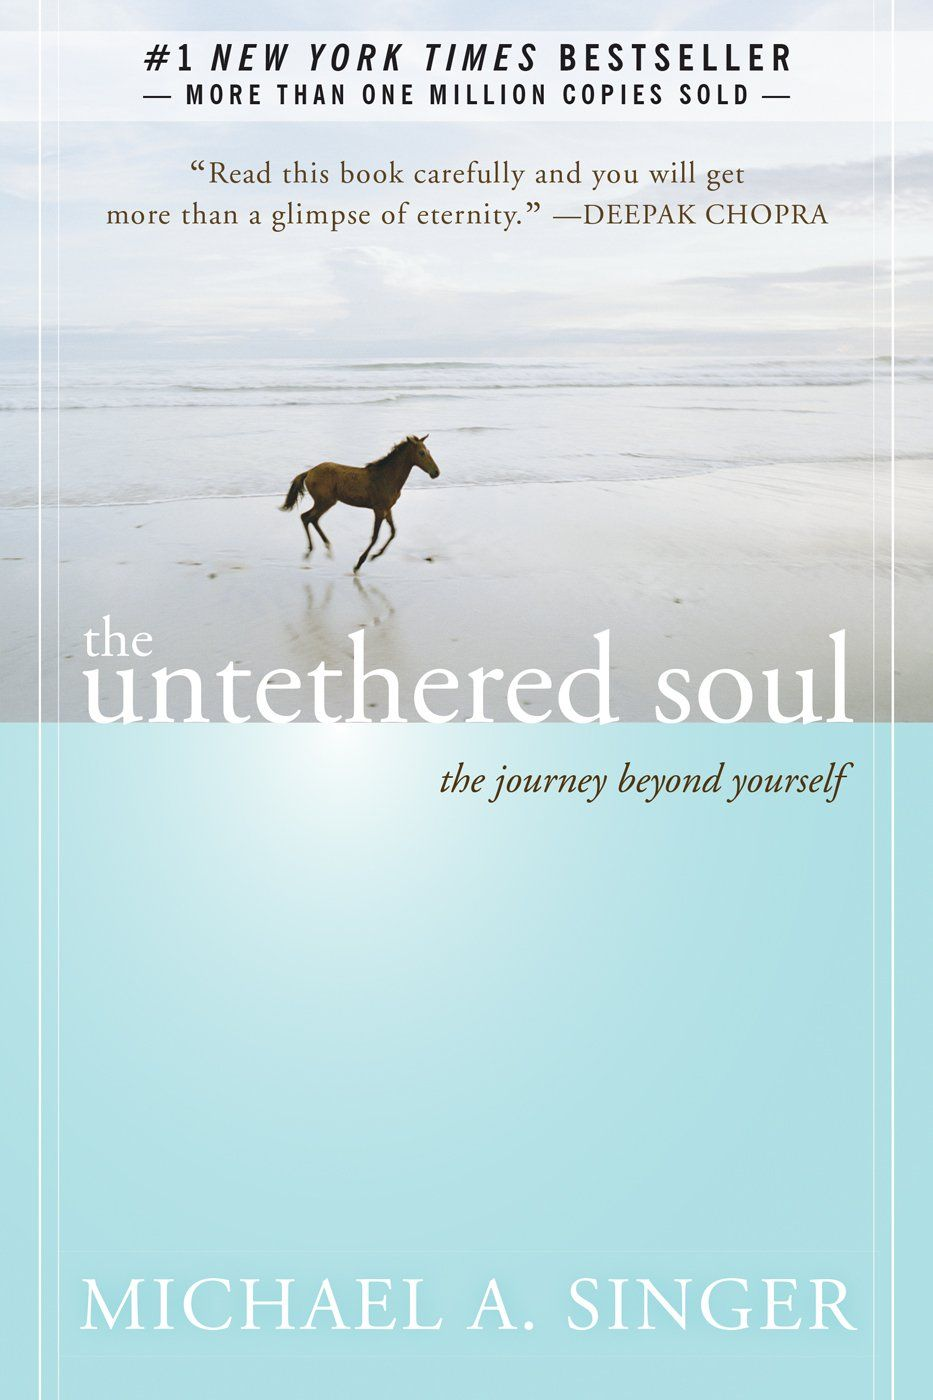 Grateful for The Untethered Soul